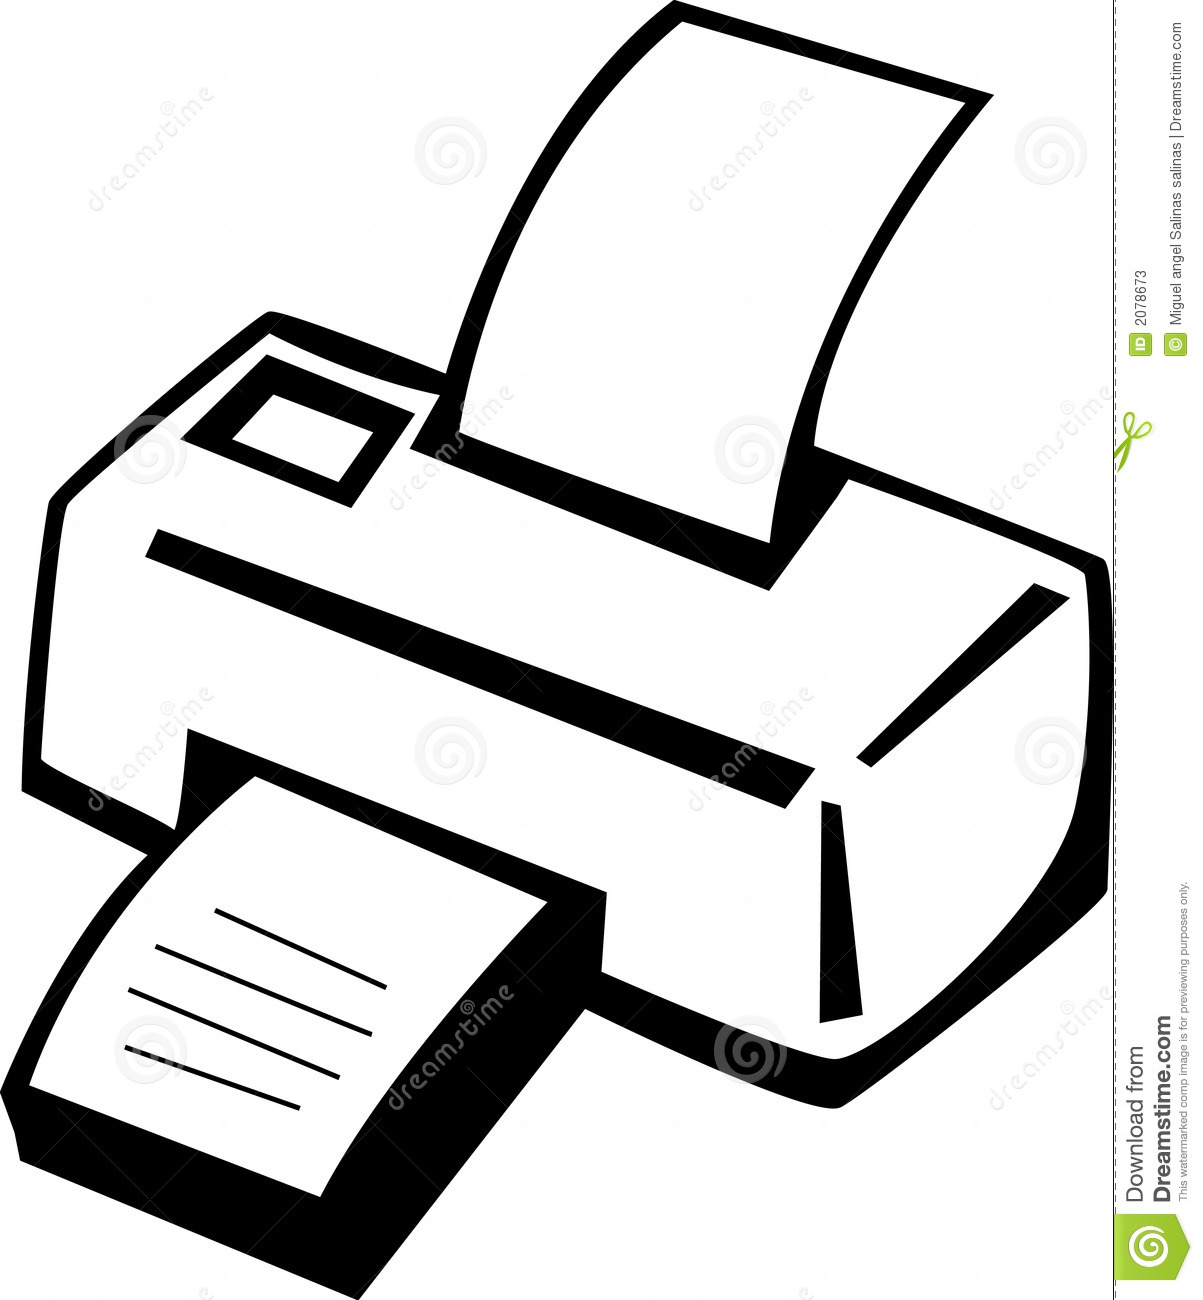 Printer Machine Vector Illustration Stock Vector